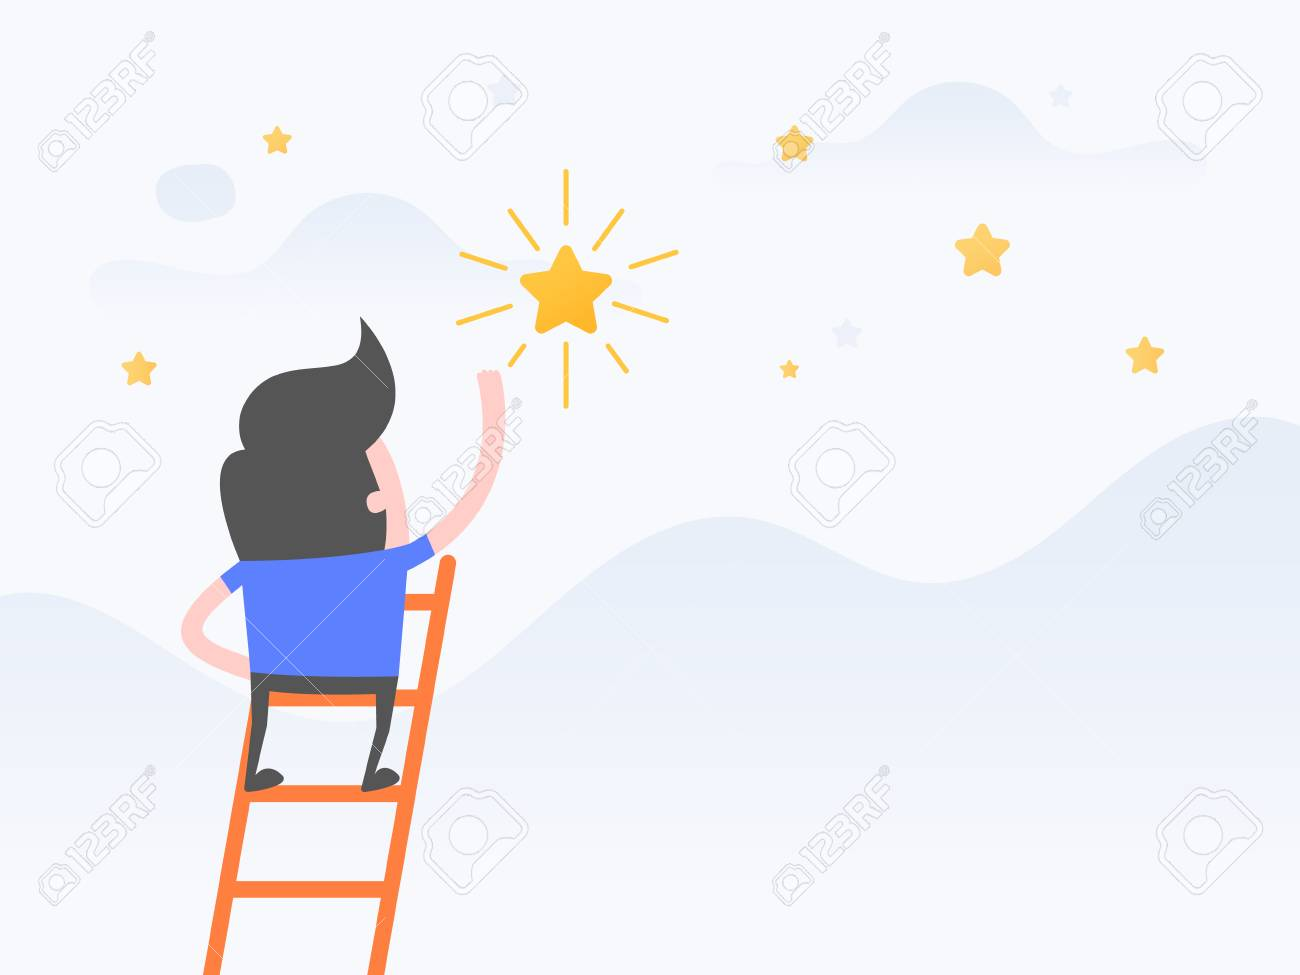 Vector illustration concept of dreams, Goals, Businessman steps onto ladder reaching to the star. - 121422274